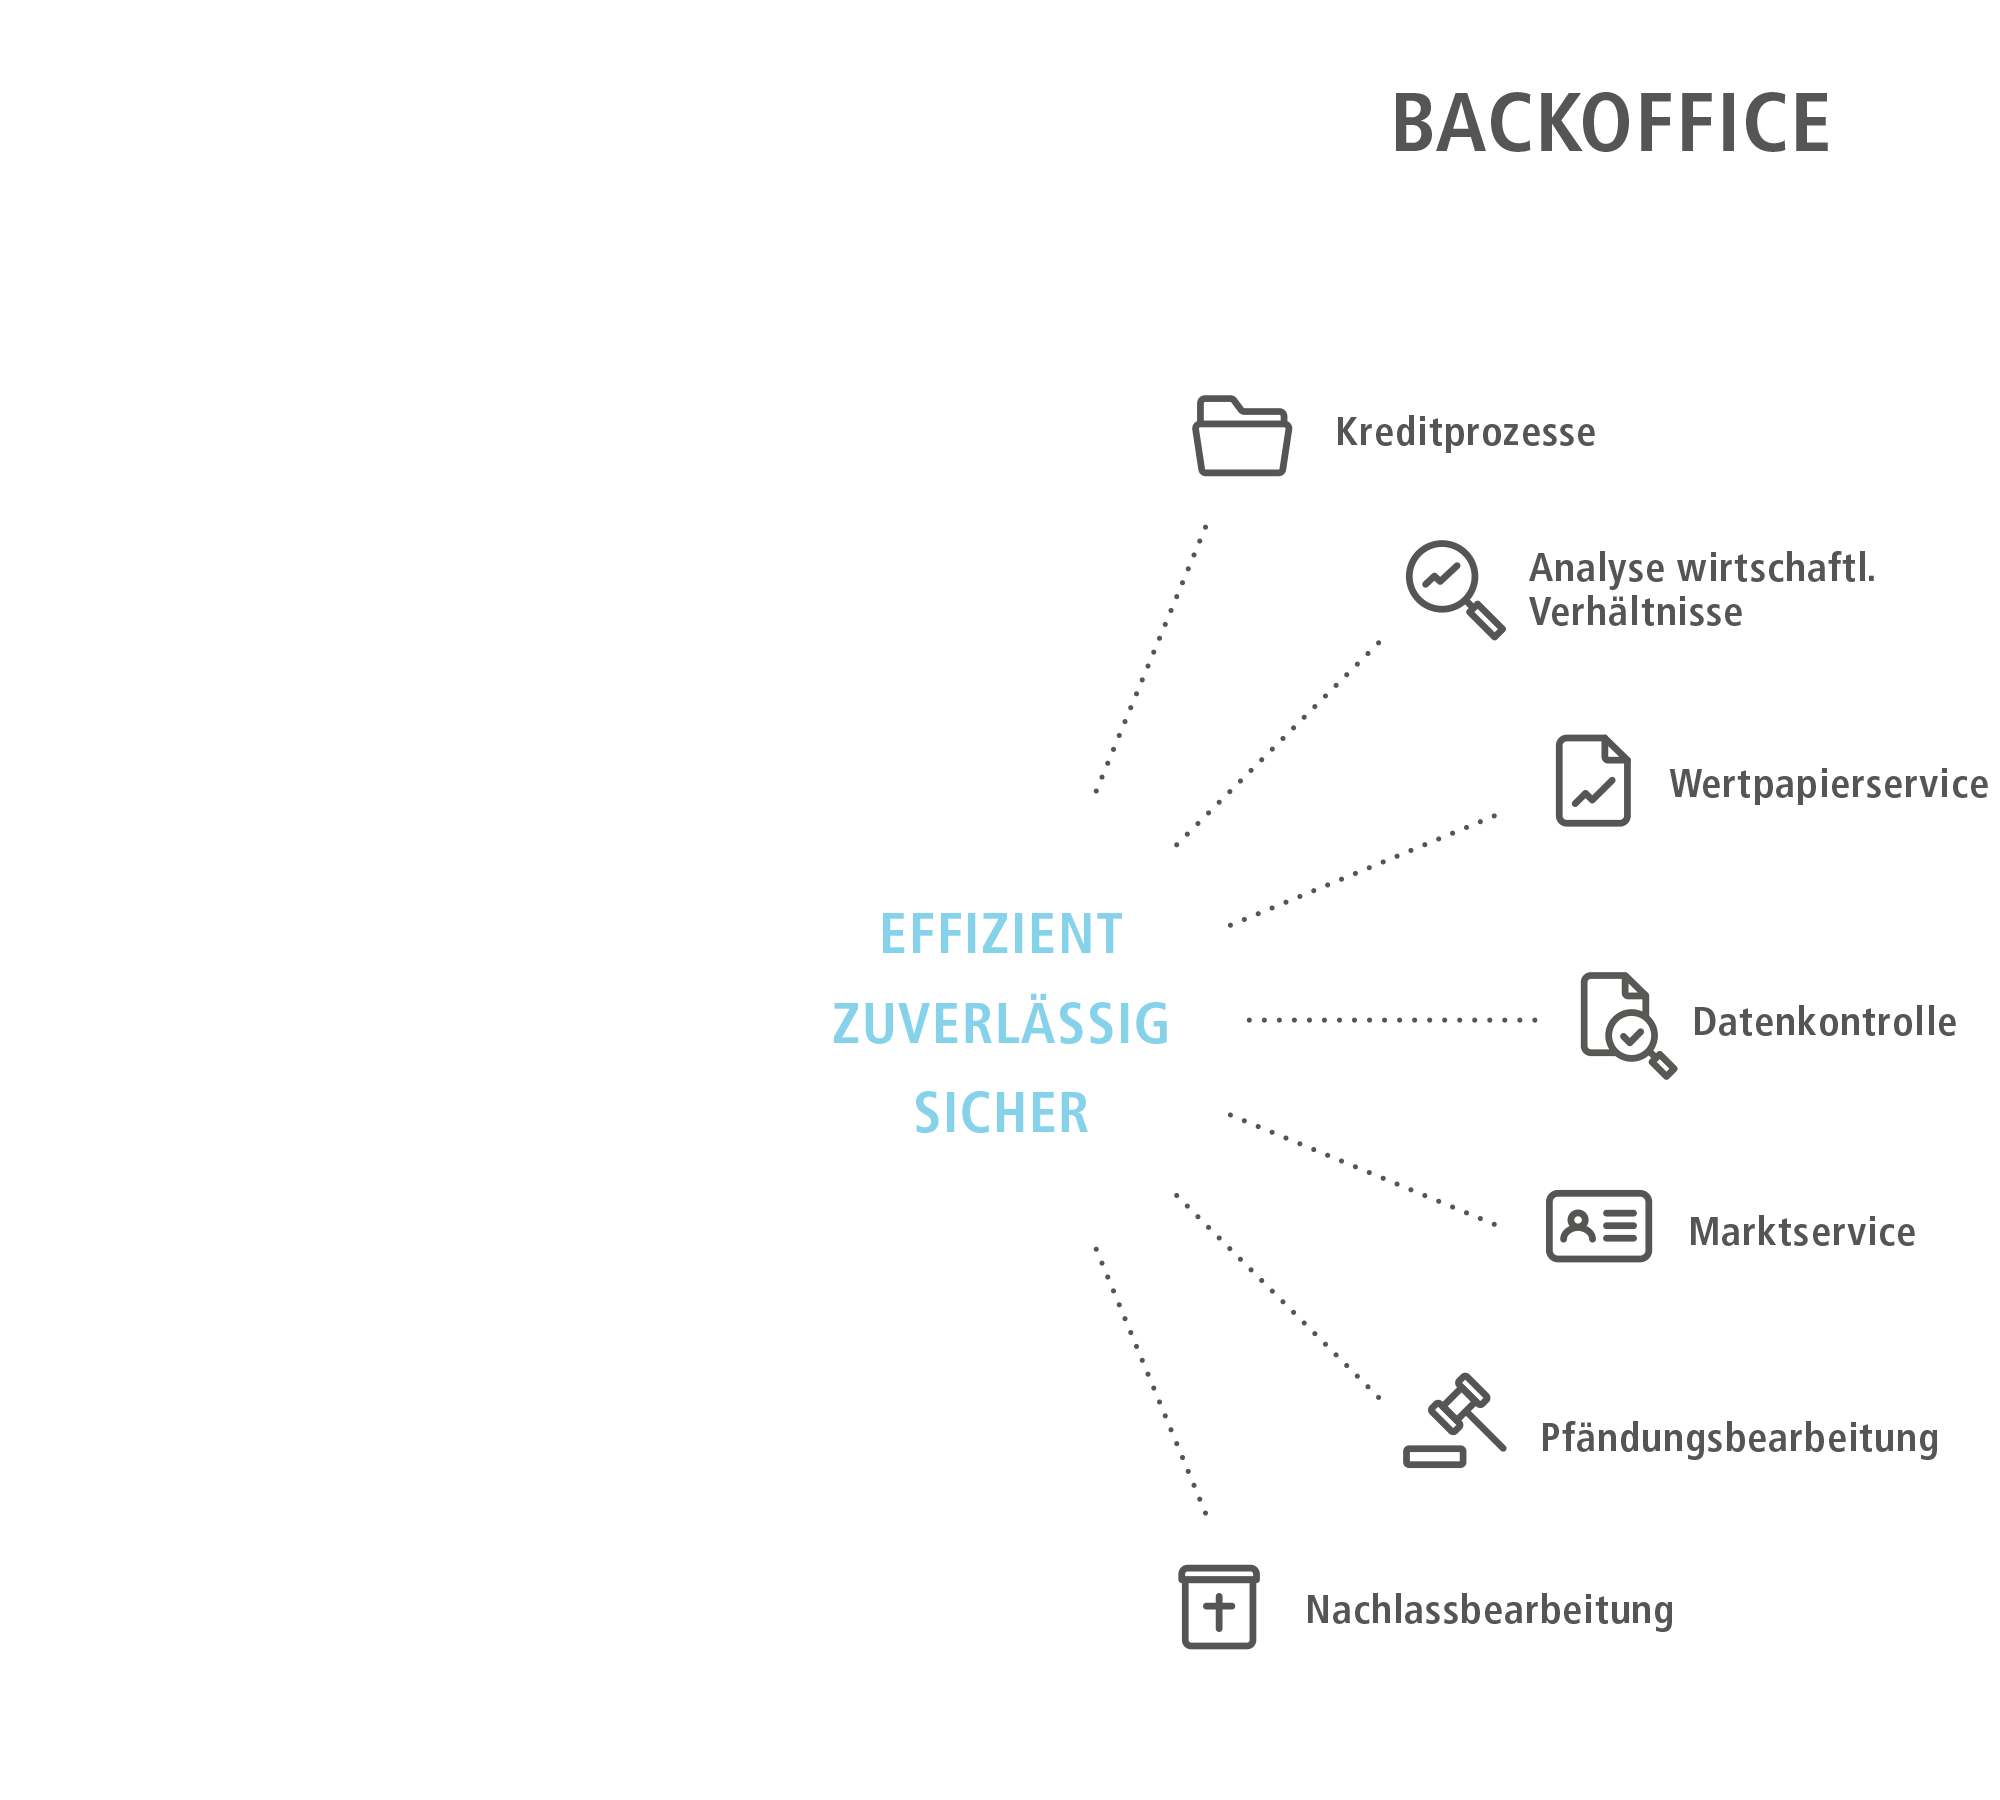 frontoffice_backoffice